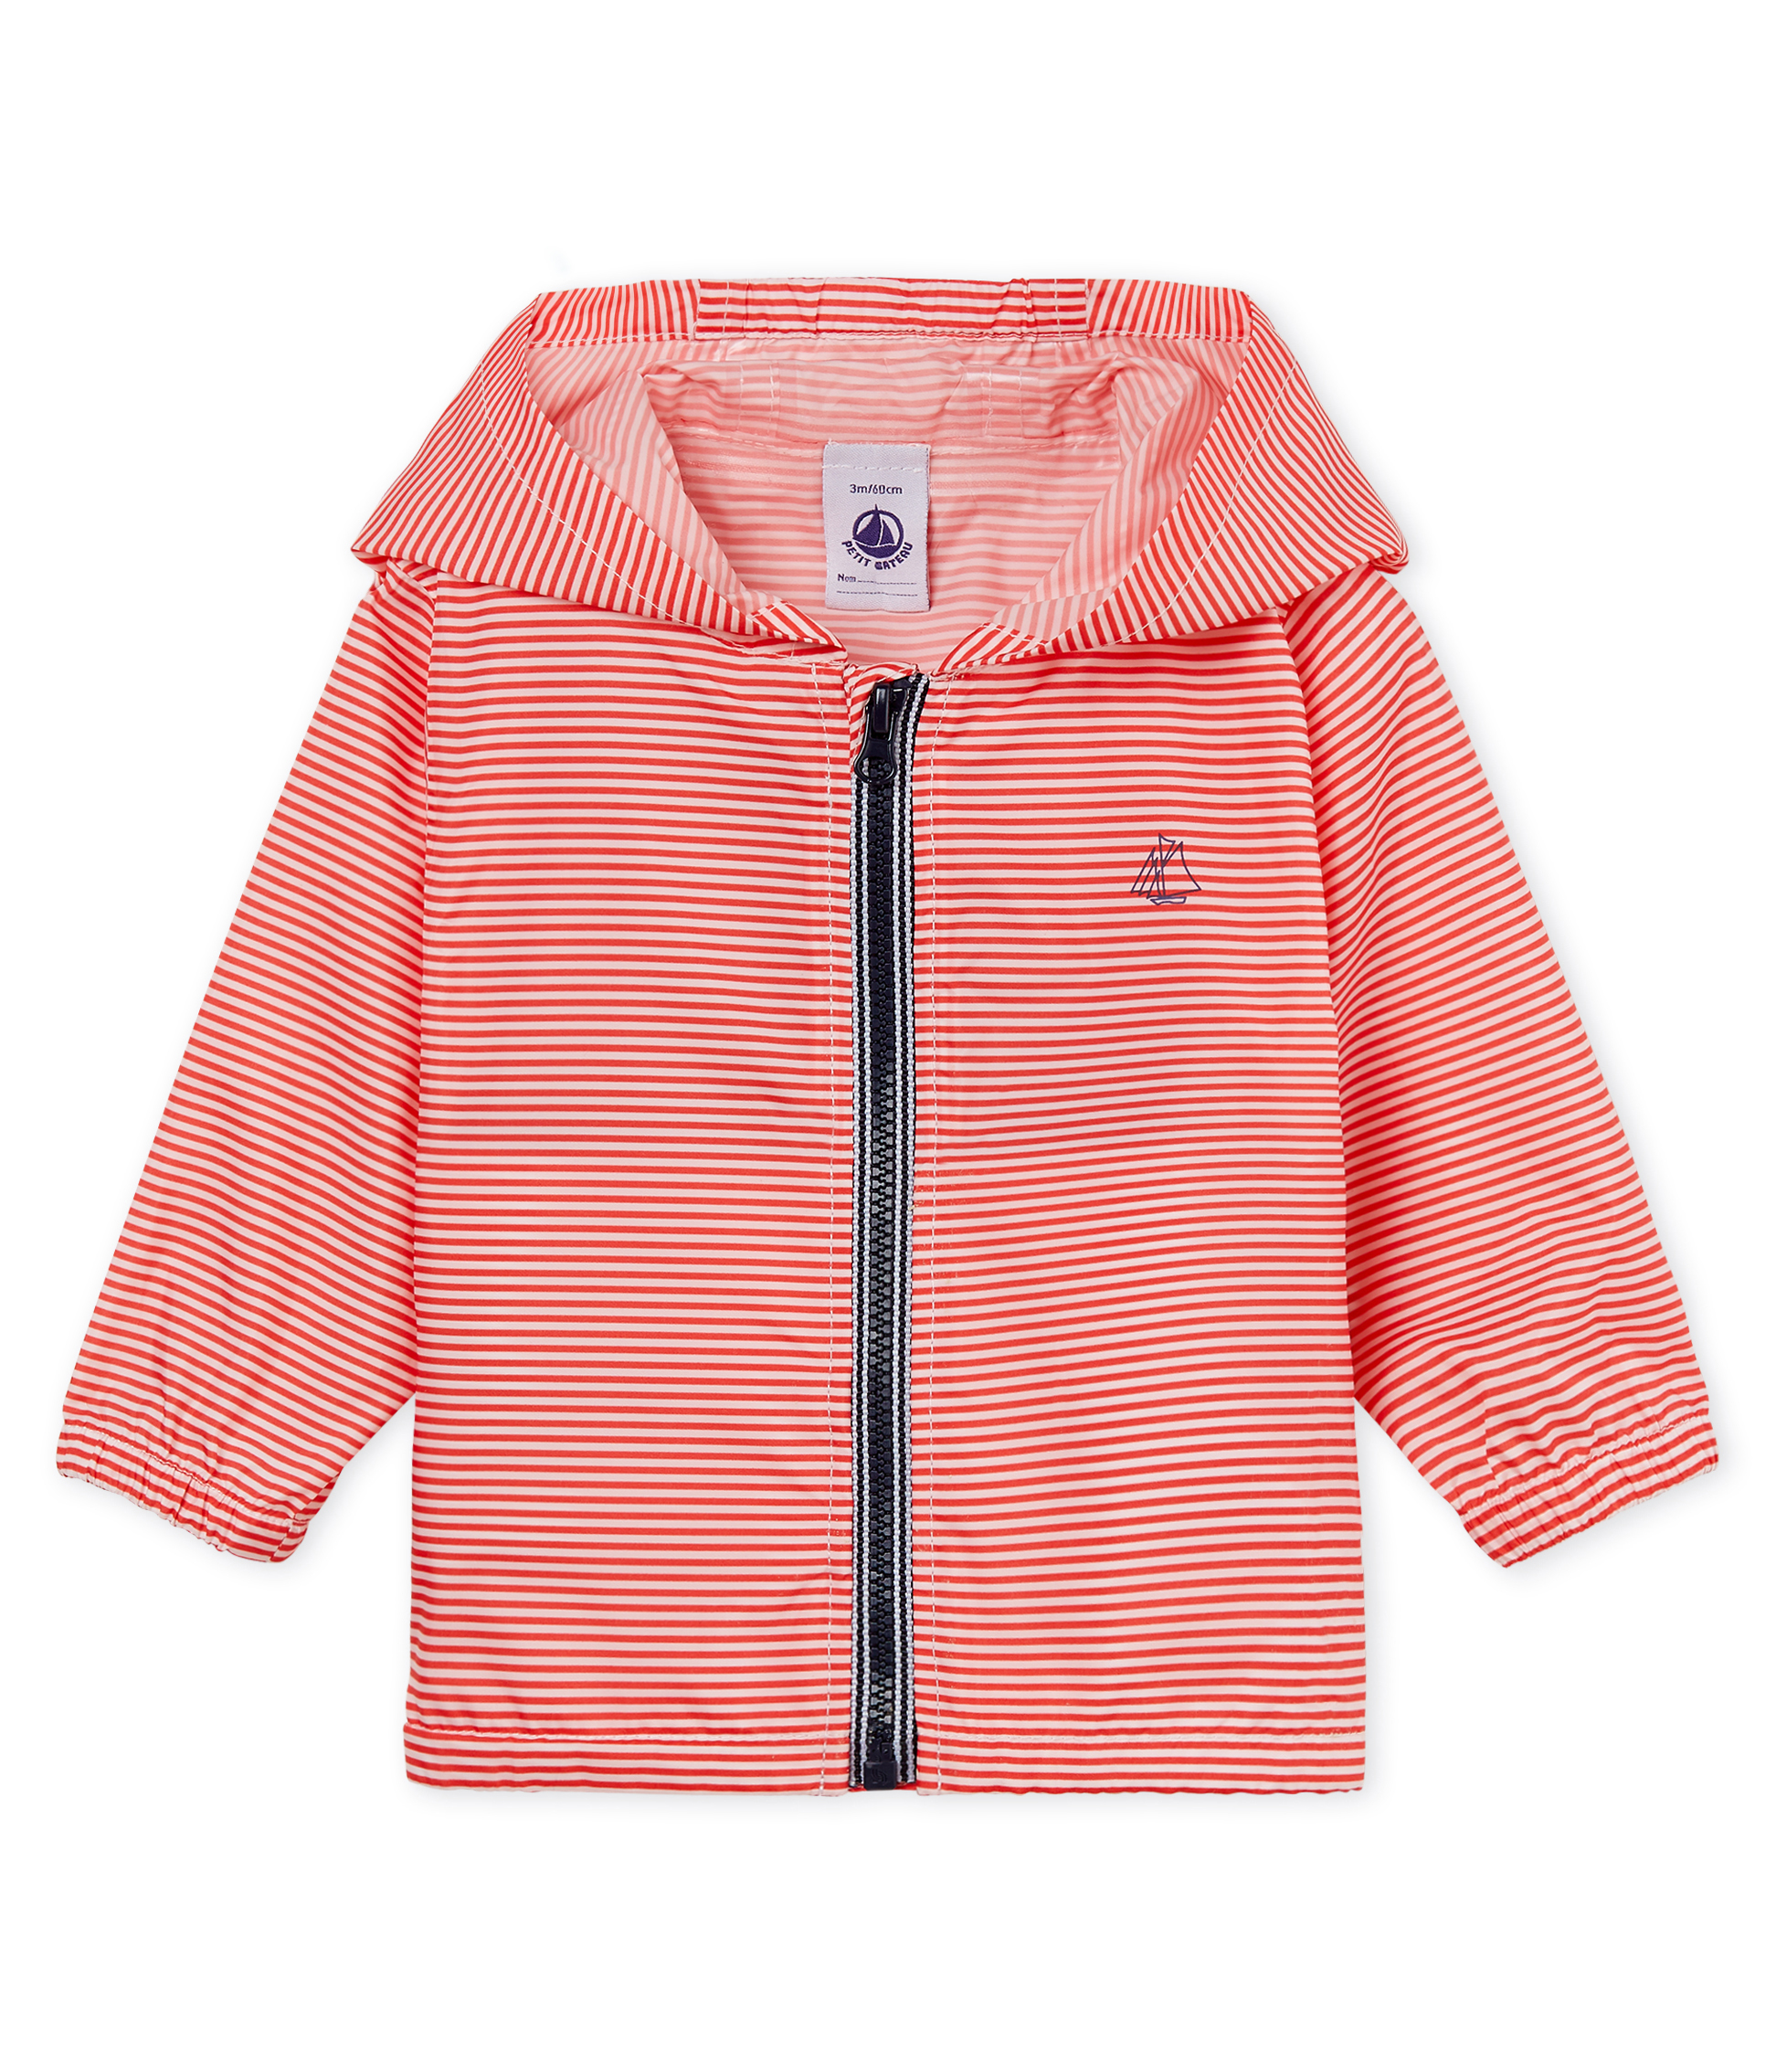 Unisex stripy windbreaker for babies